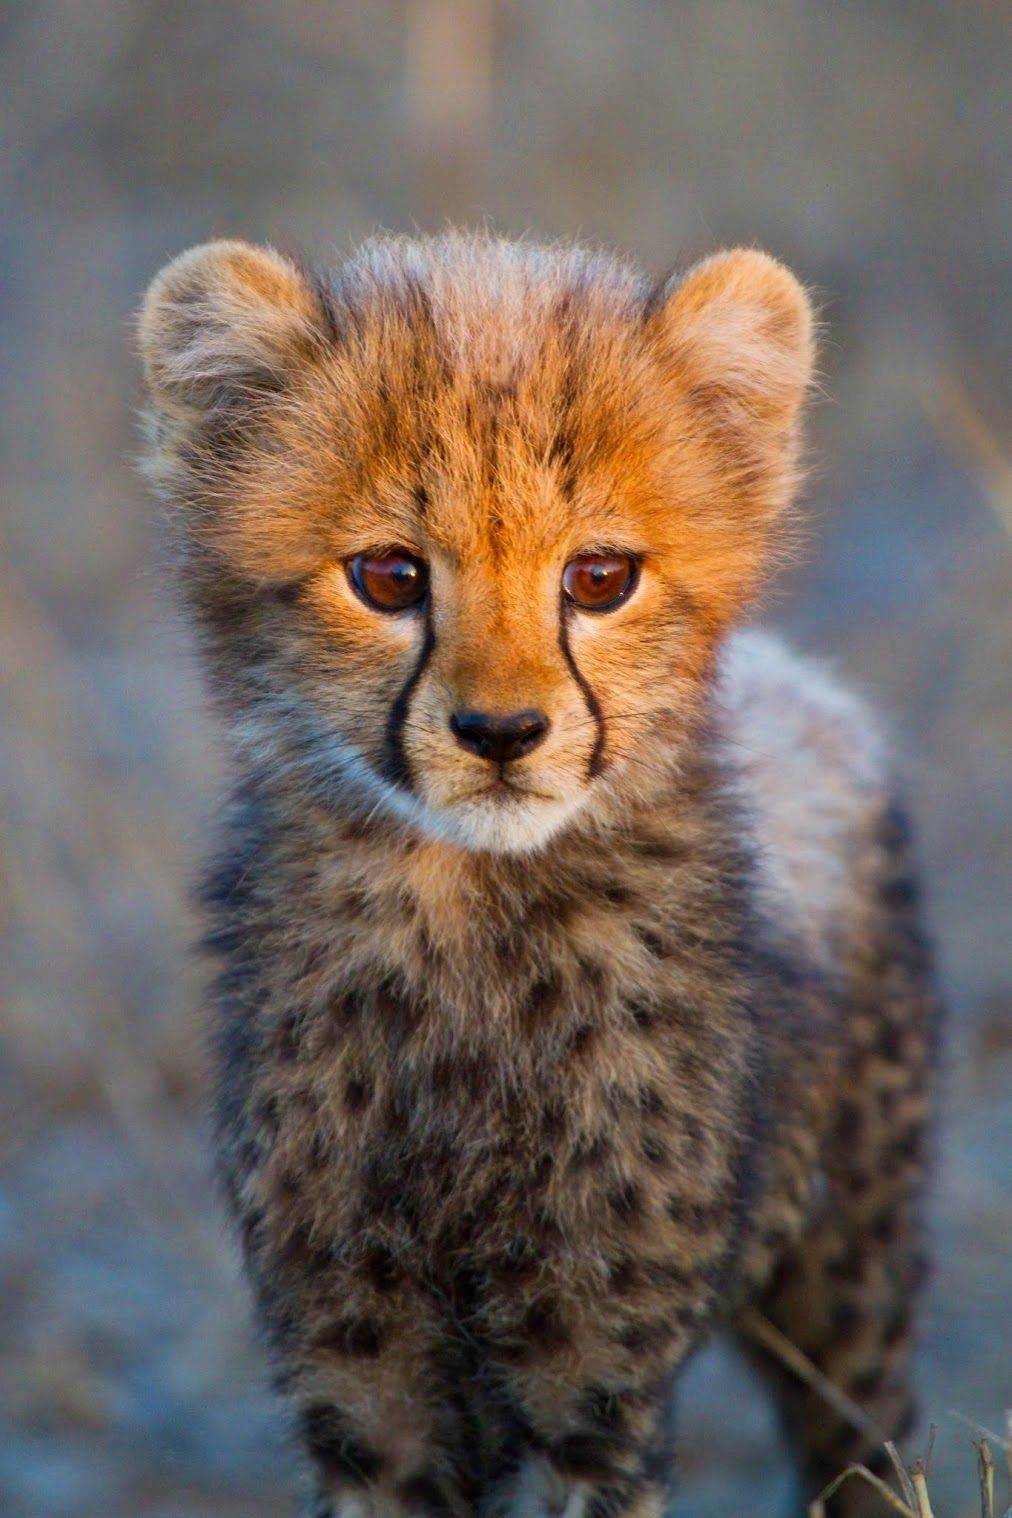 Babies Wallpaper Cute A Beautiful Young Cheetah Cub Wildlife Photography